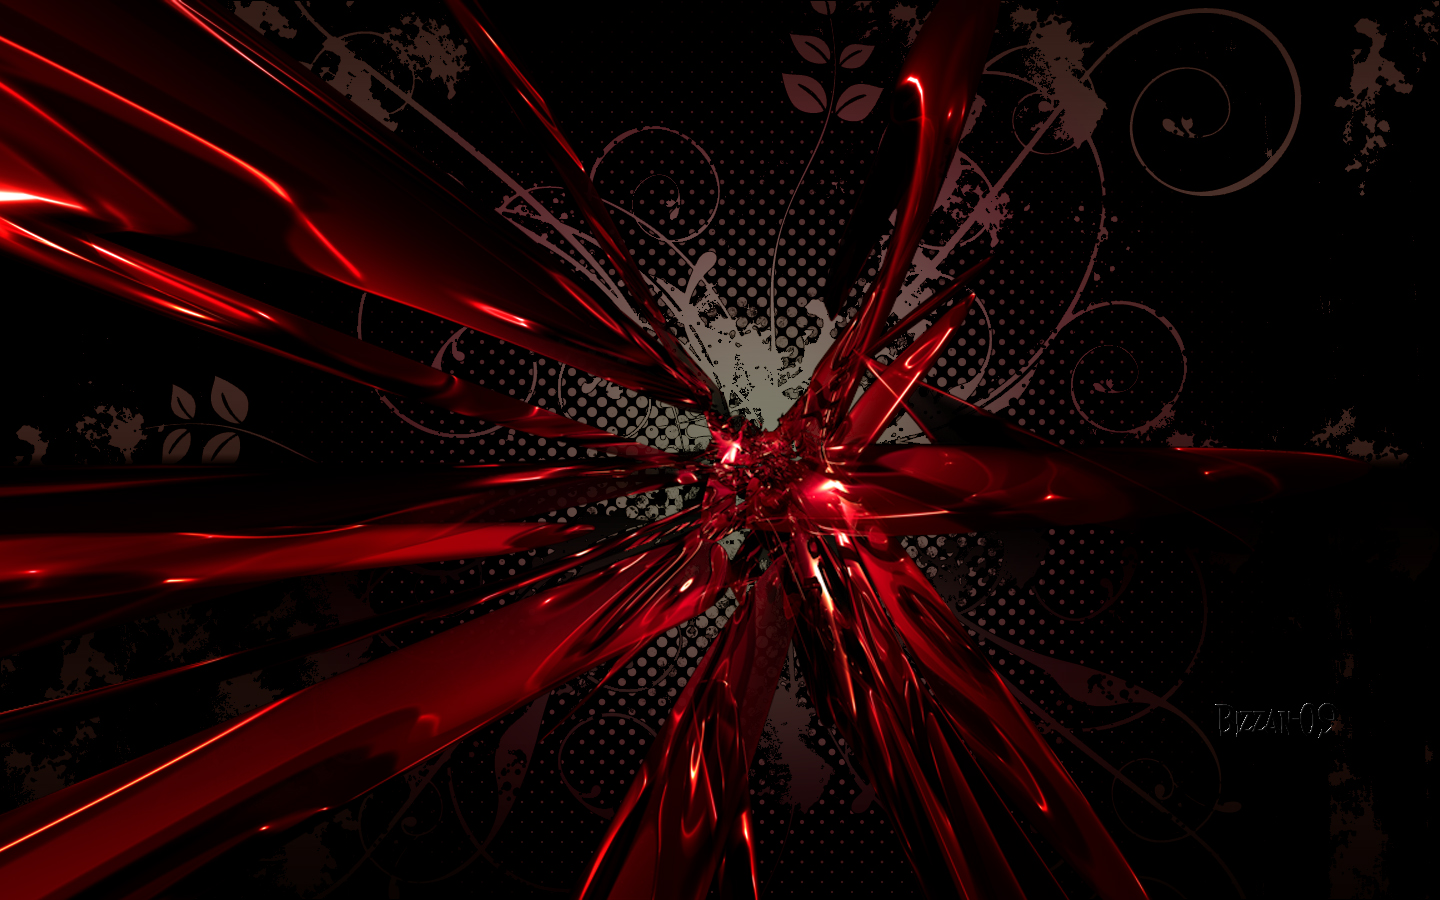 Free Download Red Amazing Desktop Wallpaper 1440x900 For